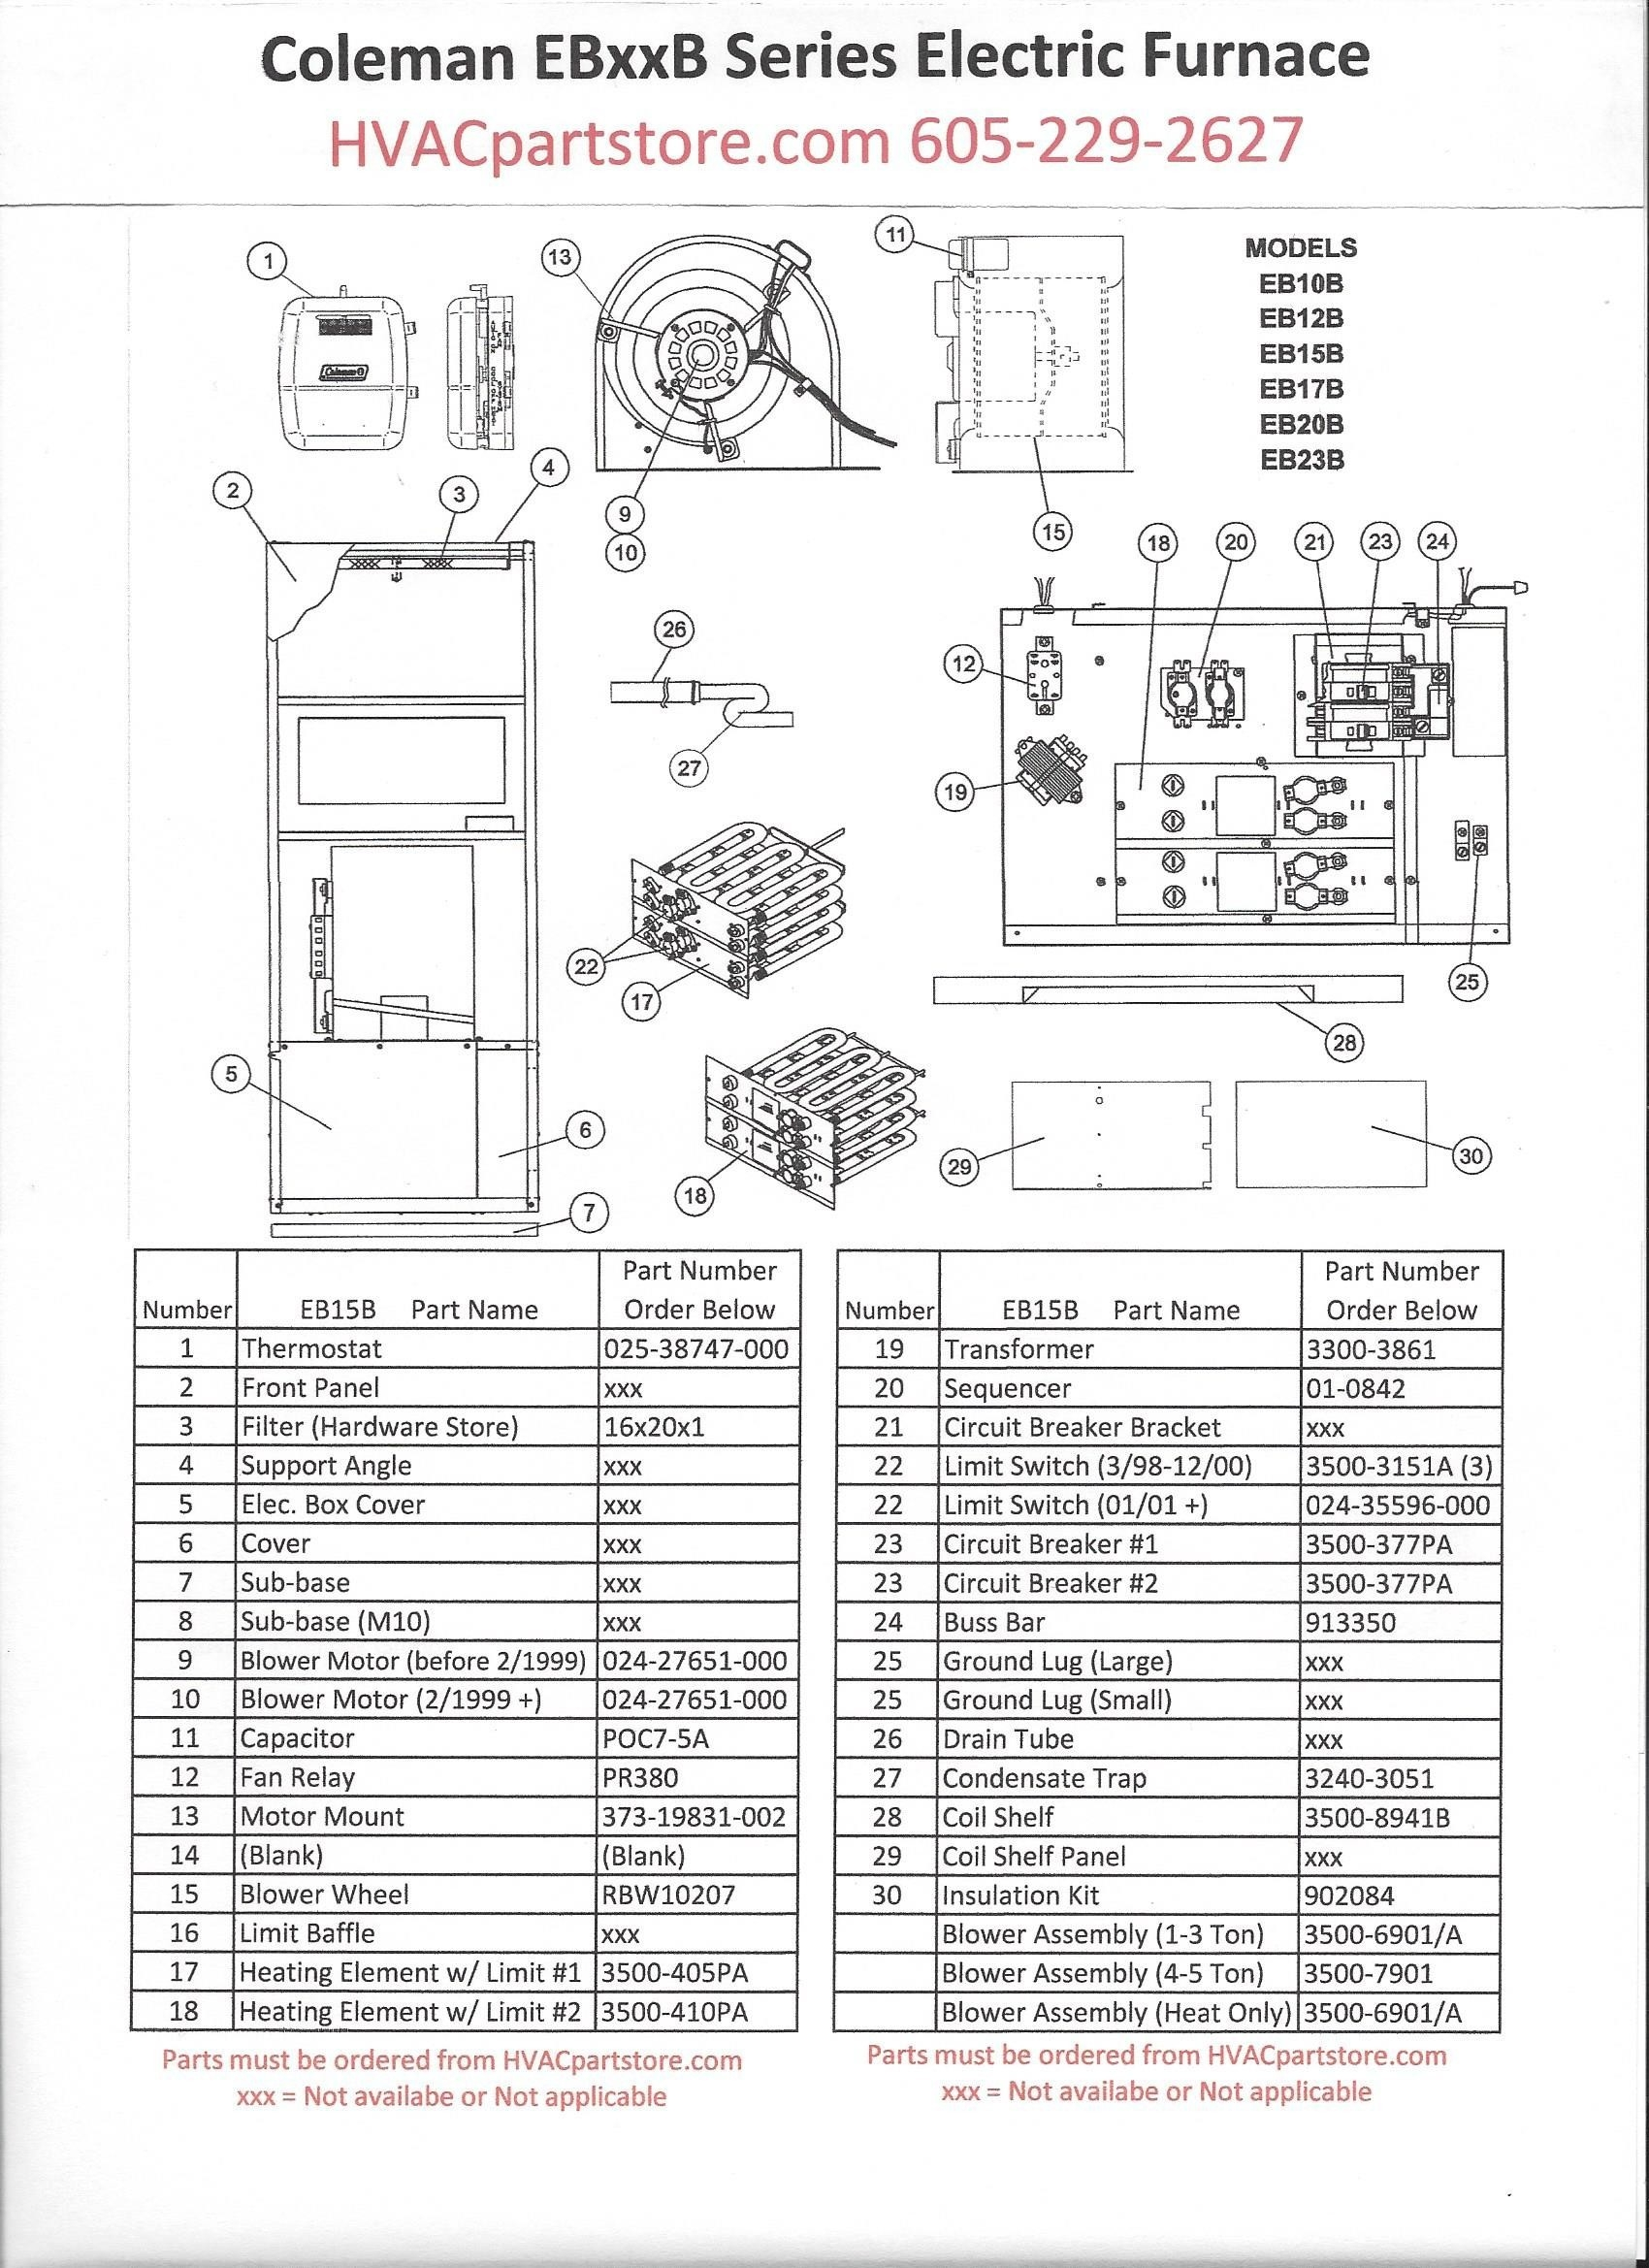 Wiring Diagram For Suburban Hot Water Heater